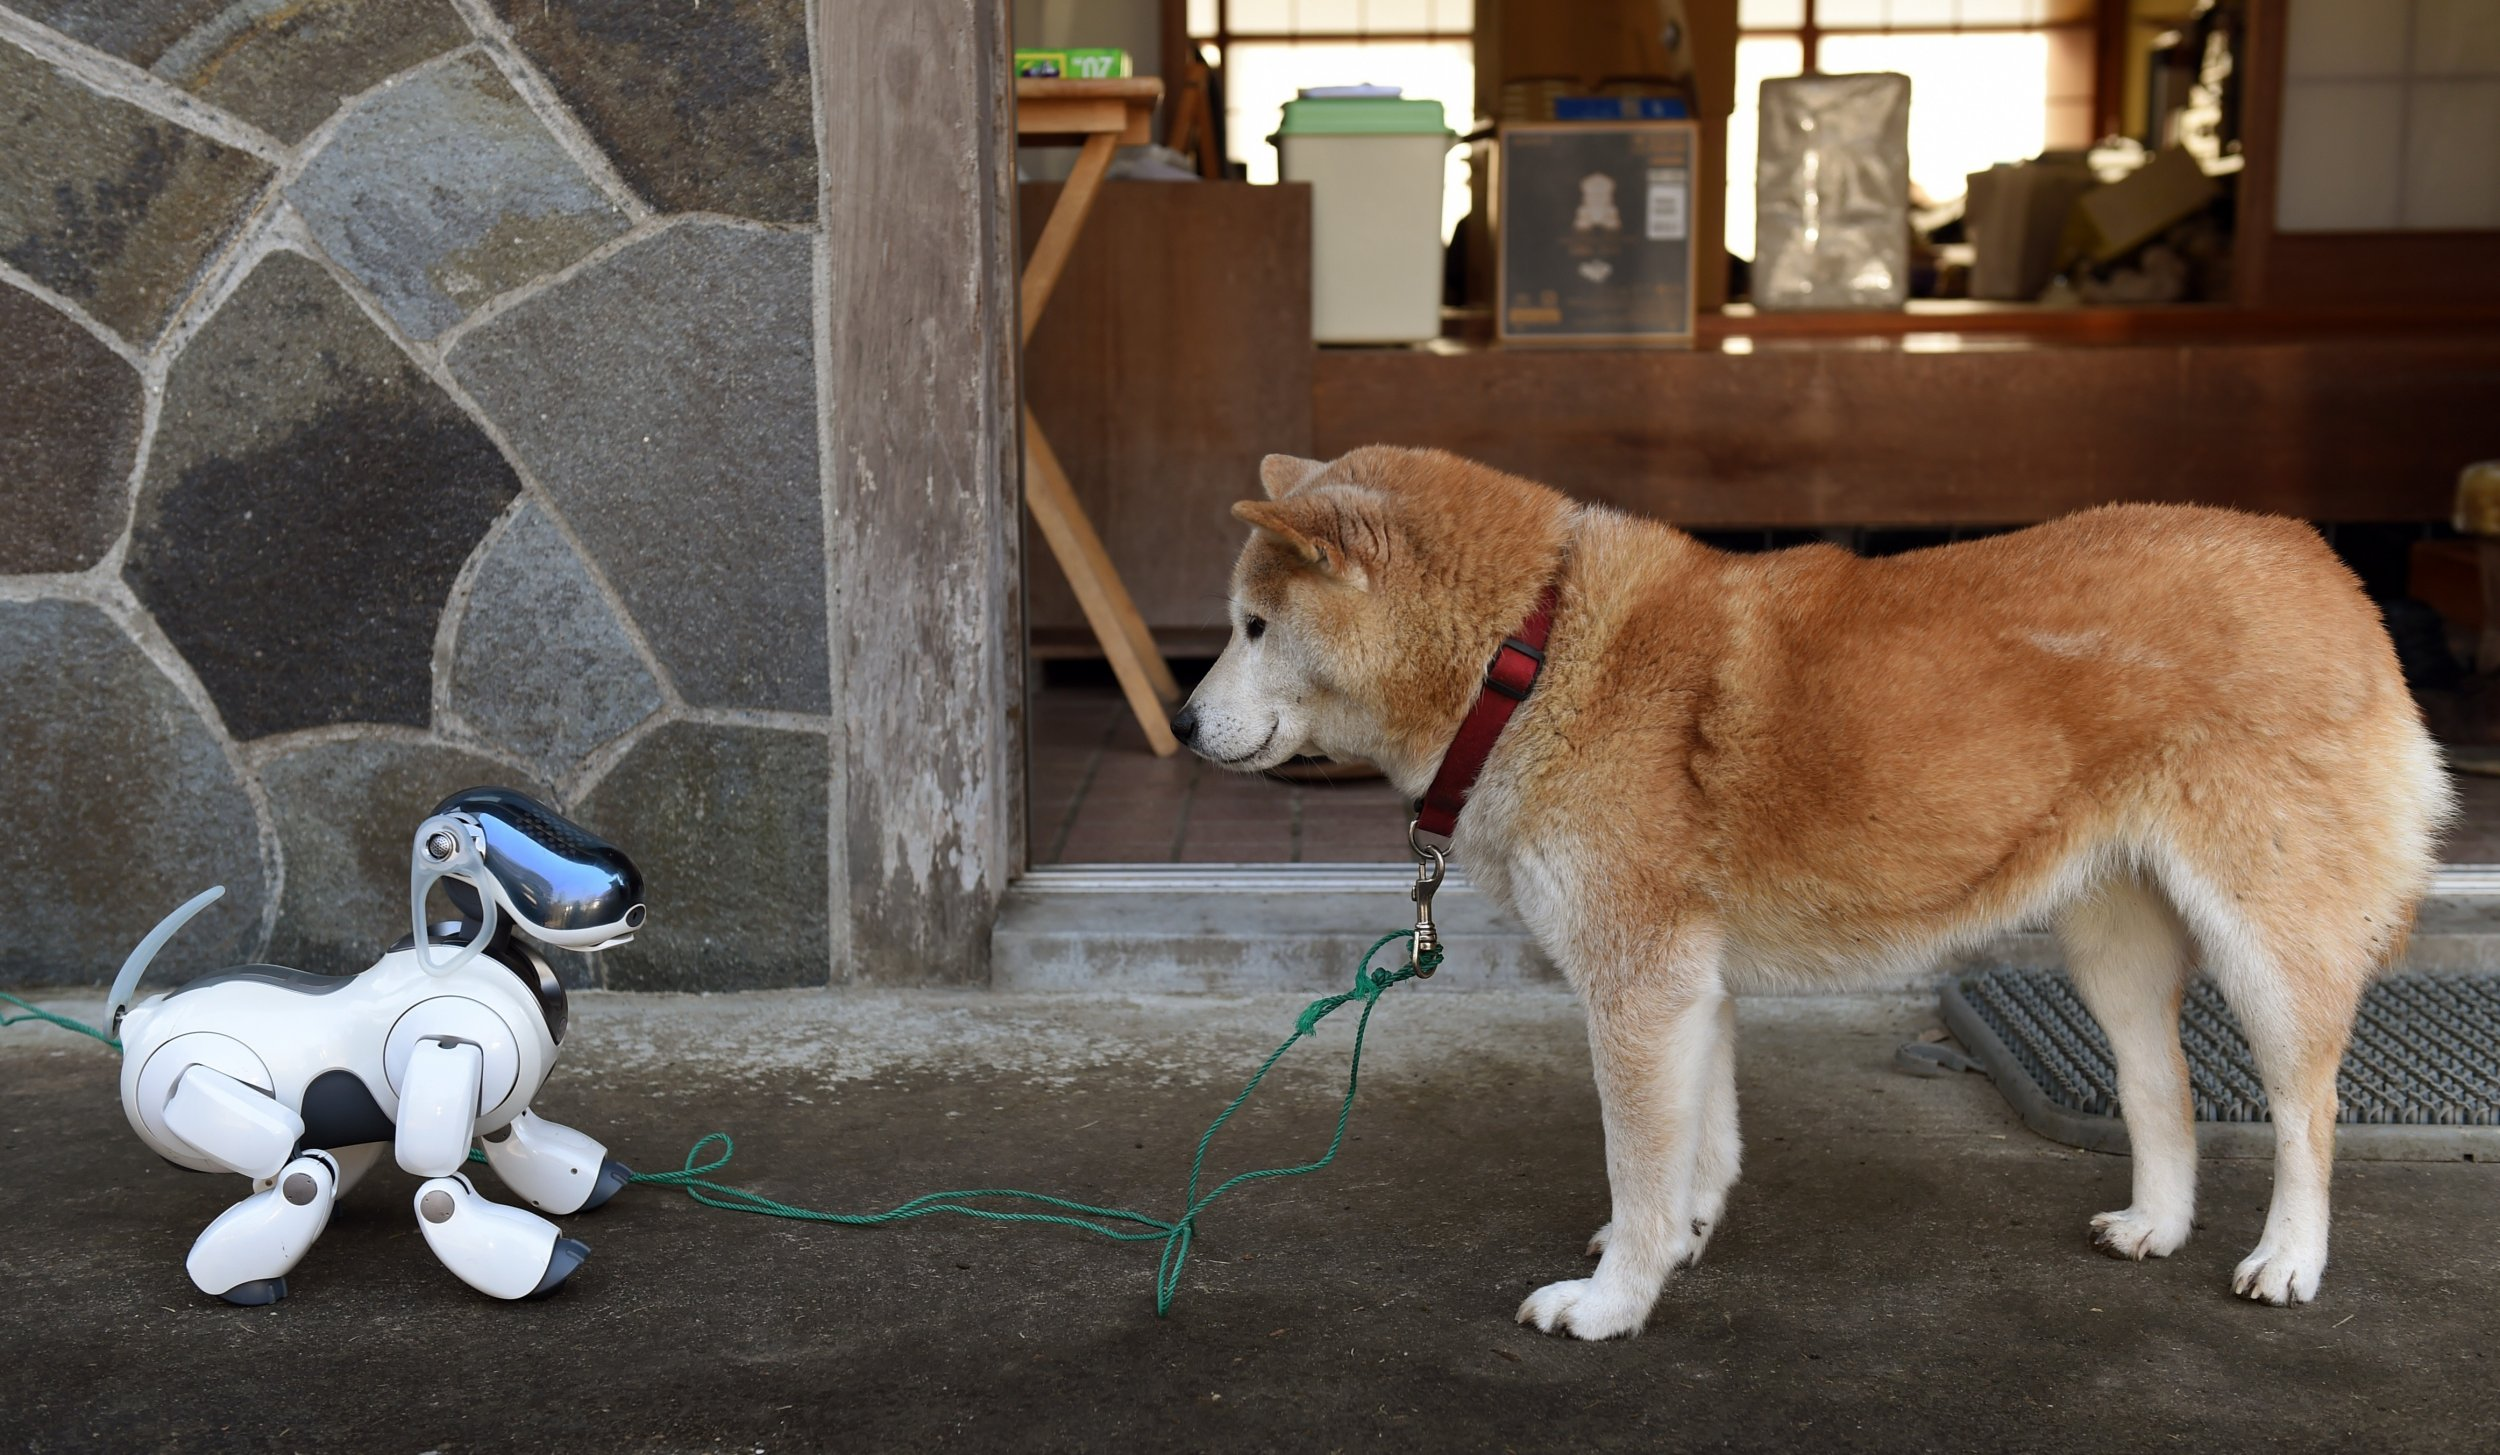 Japan's Robot Dogs Get Funerals as Sony Looks Away